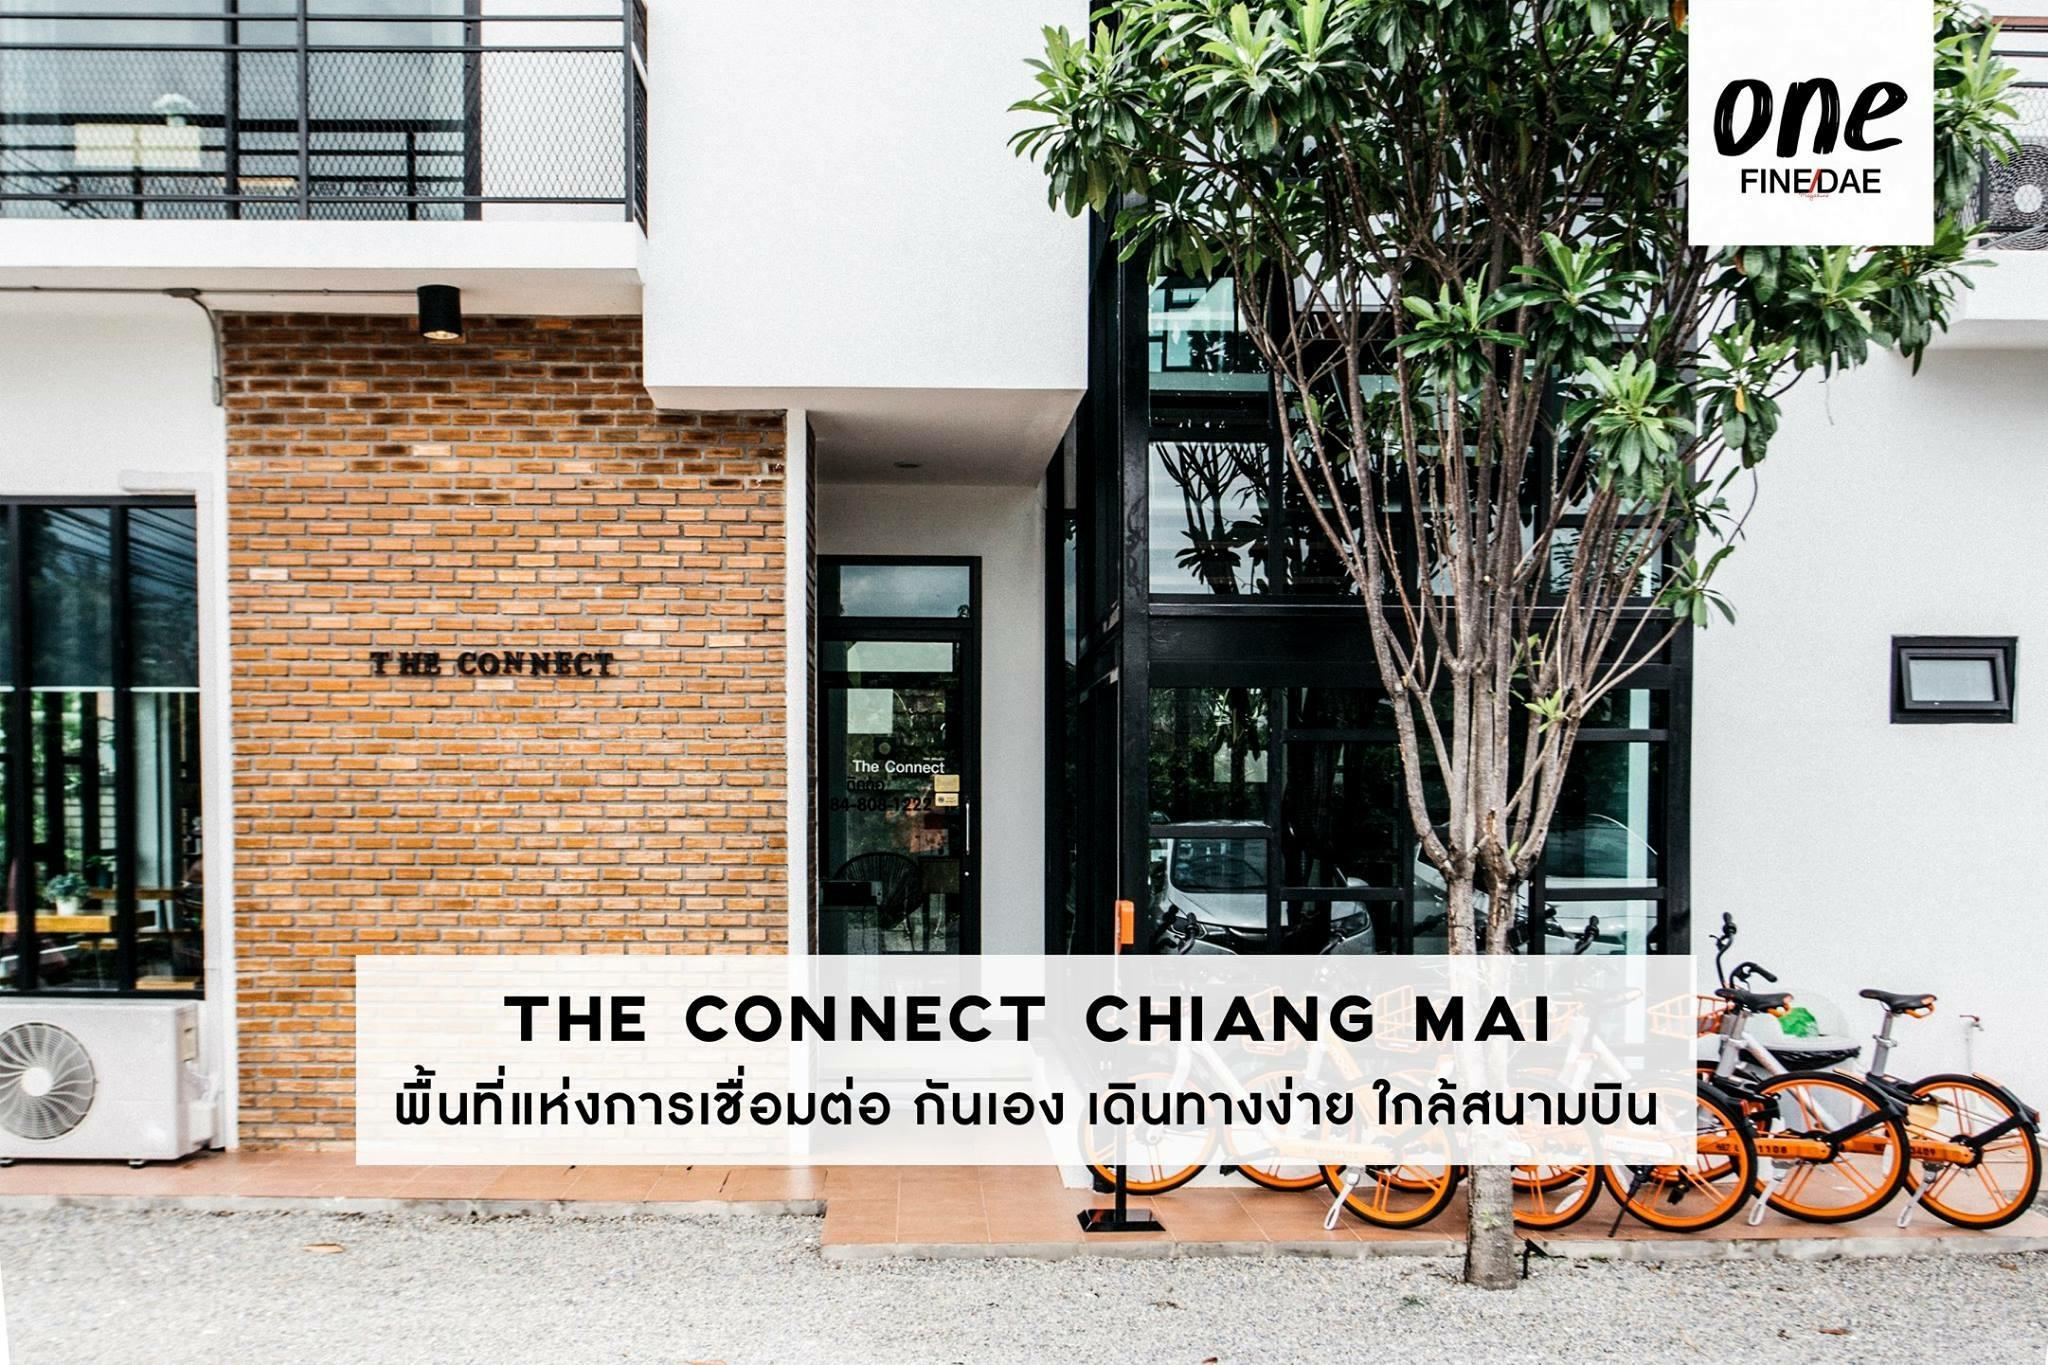 The Connect Chiang Mai